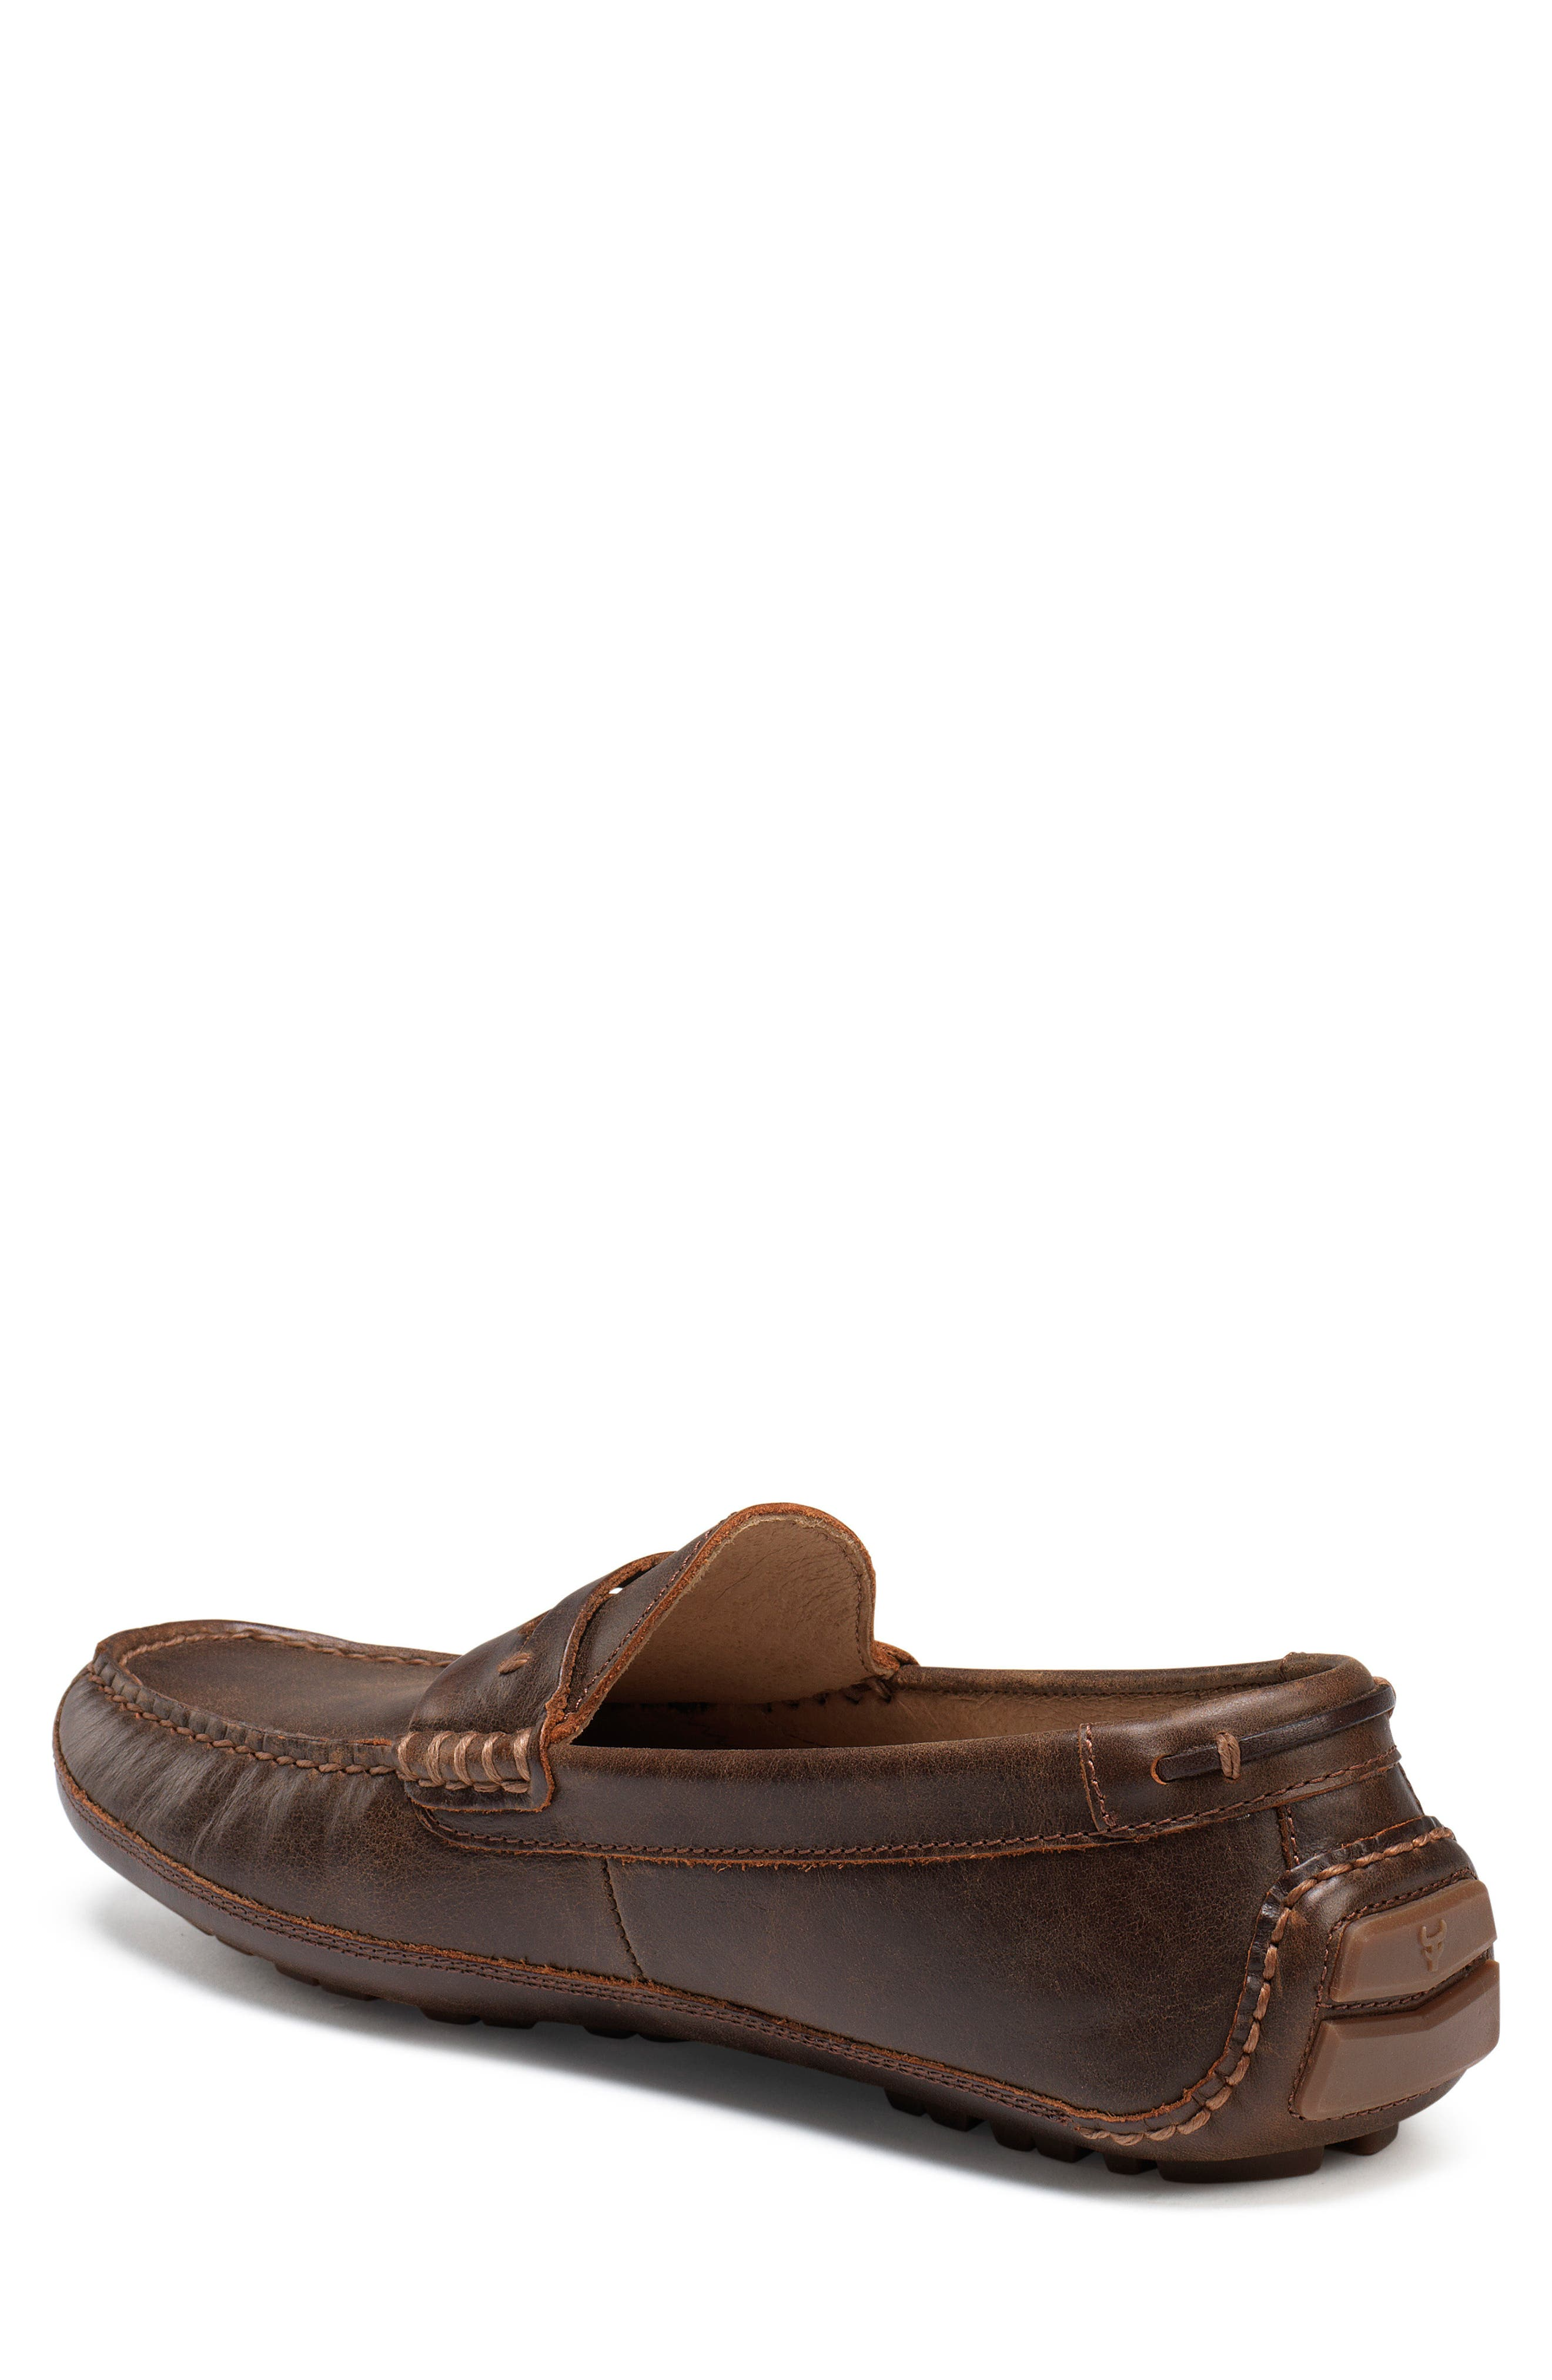 Dawson Water Resistant Driving Loafer,                             Alternate thumbnail 2, color,                             DARK BROWN LEATHER